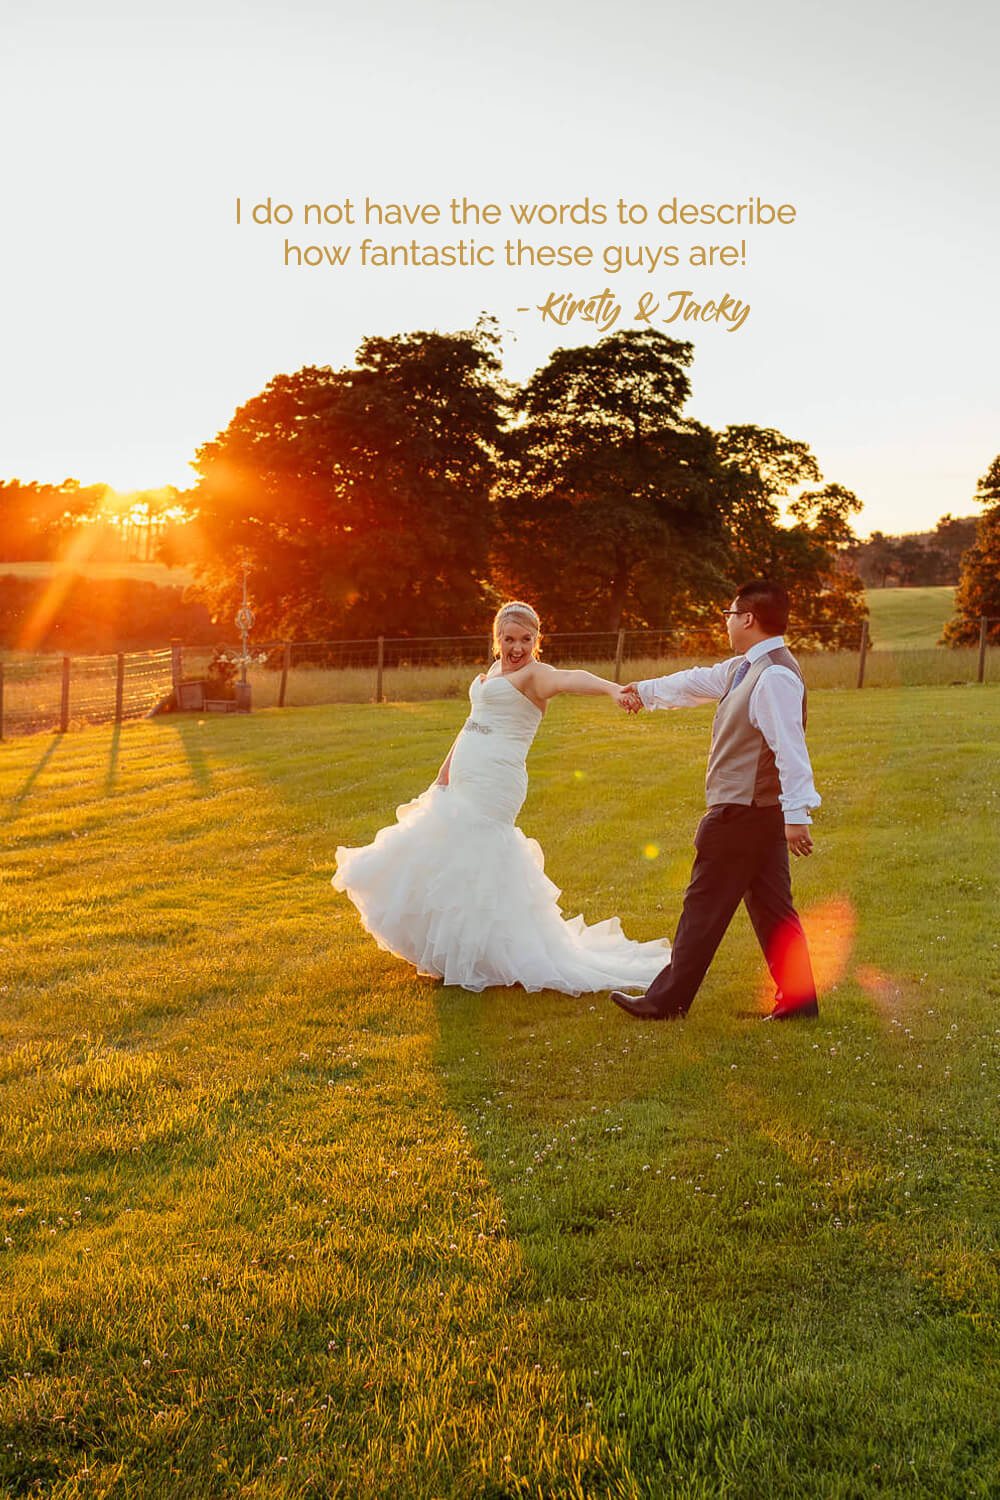 colourful wedding photographer glasgow fotomaki photography reviews feedback from wedding clients bride groom laughing in garden at sunset at cornhill castle